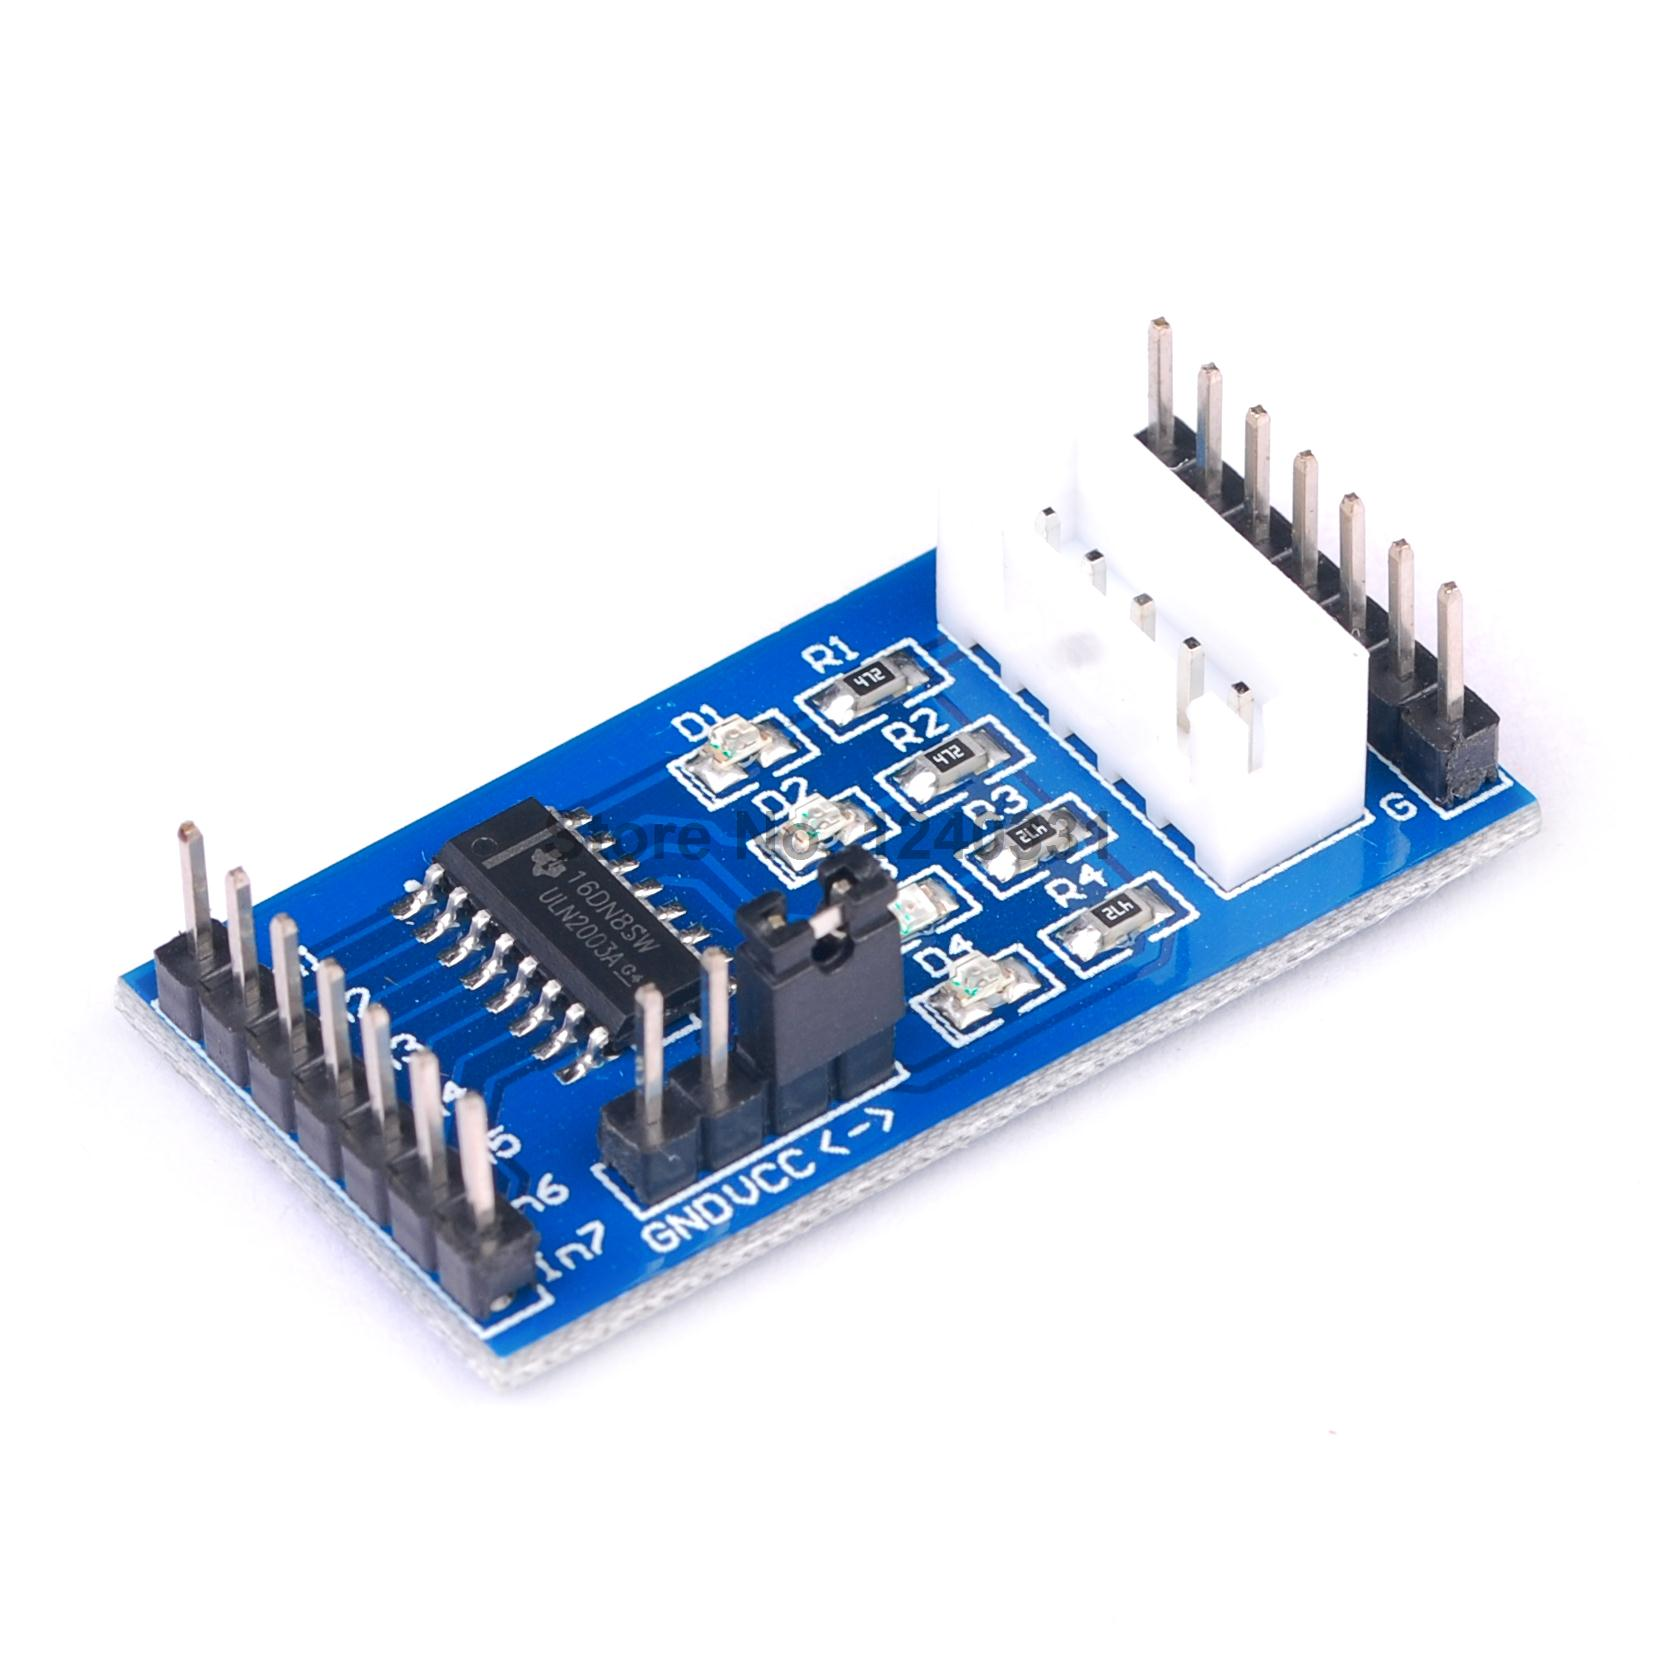 2PCS Stepper Motor Driver Board Module ULN2003 for 5V 4-phase 5 line 28BYJ-48 For Arduino(China (Mainland))